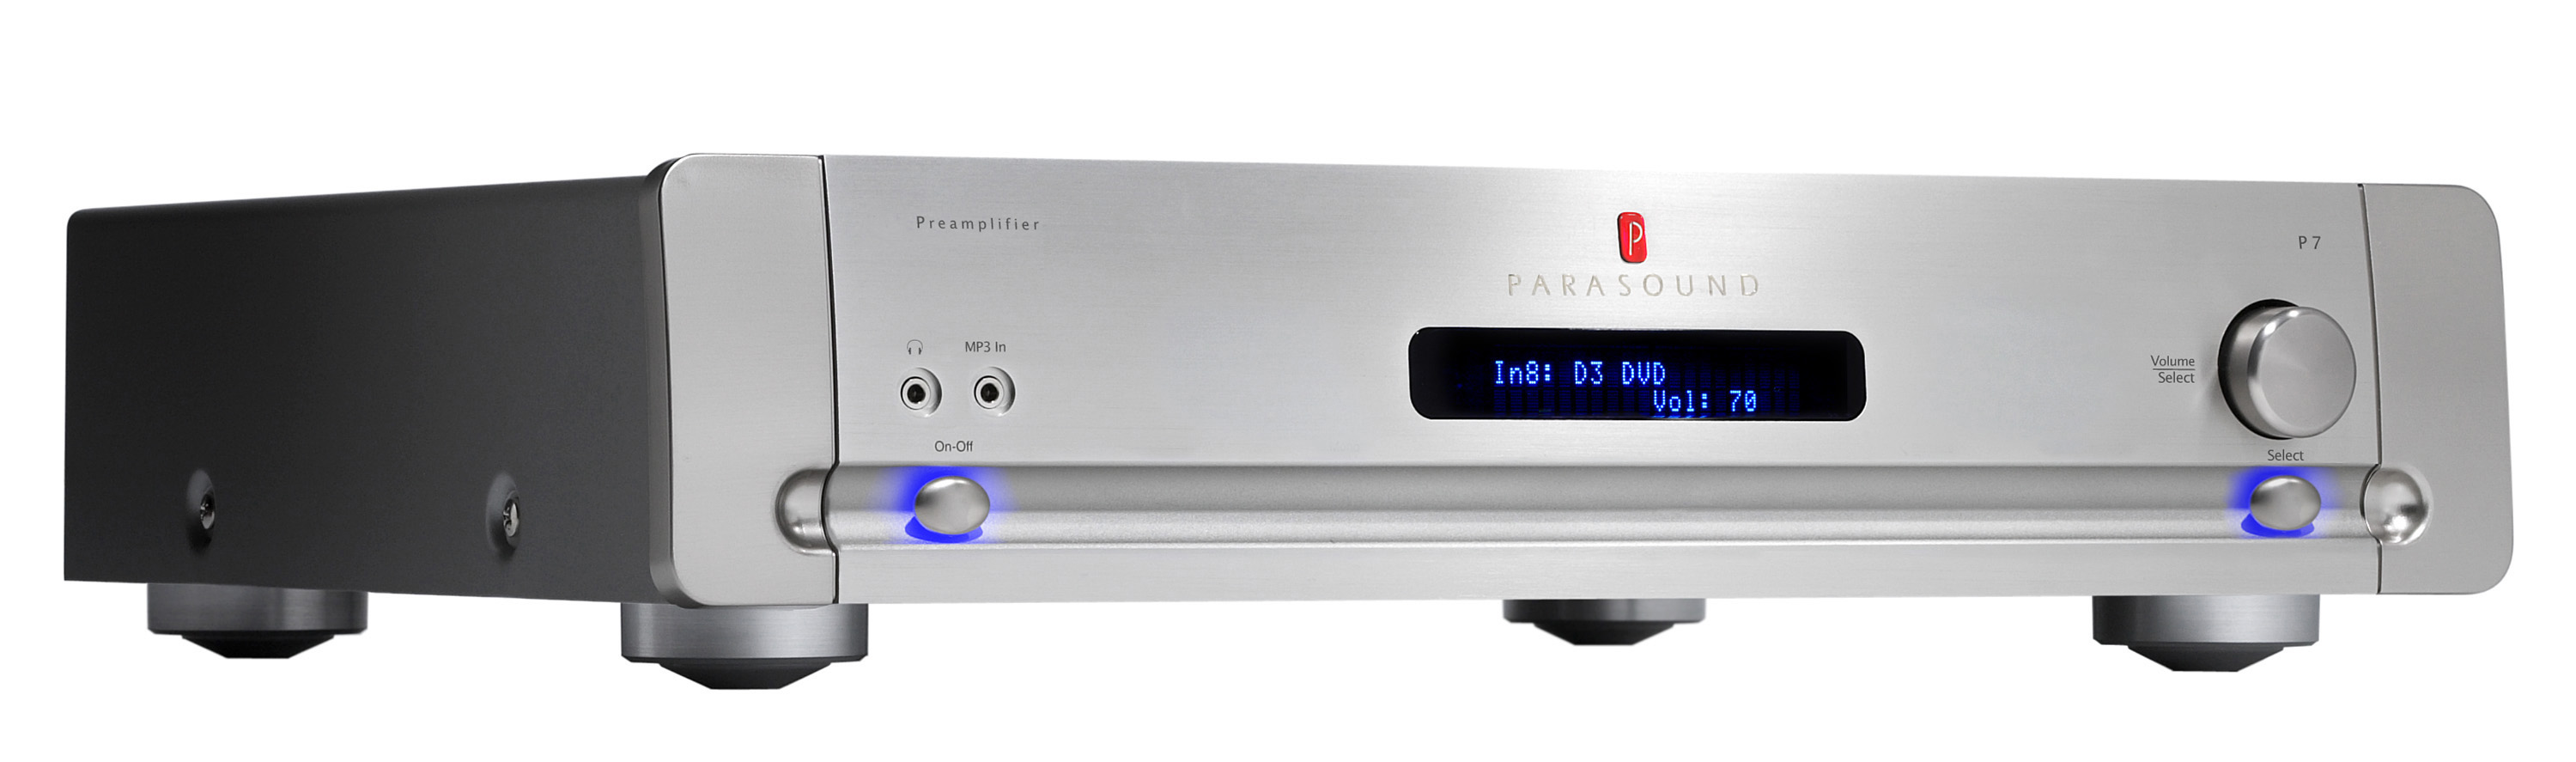 Parasound+Halo+P7+Multi+Channel+Audio+Preamp+